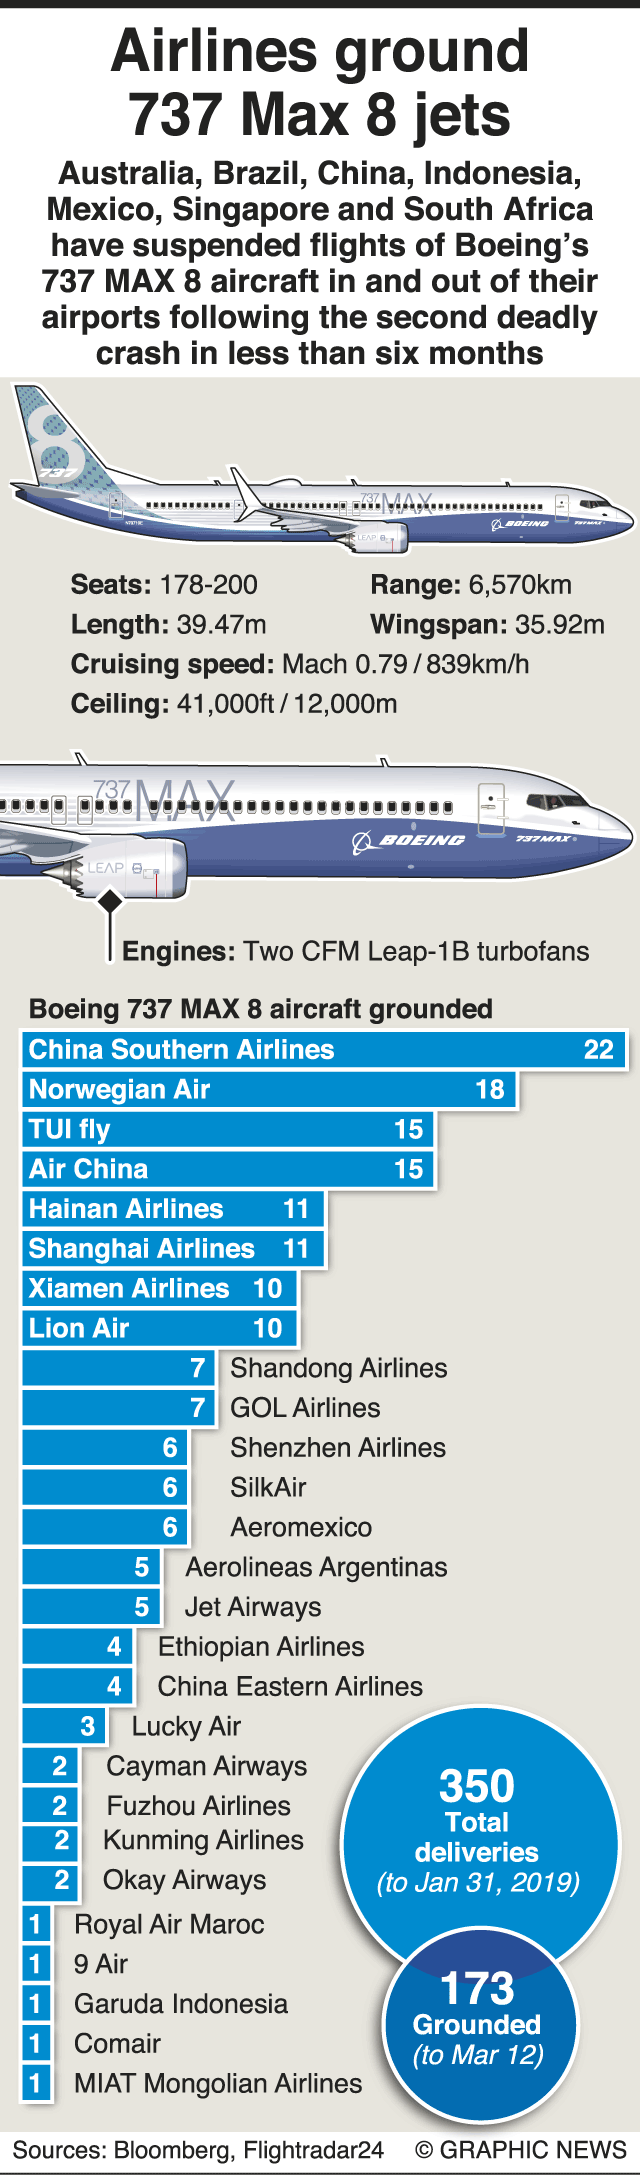 Boeing 737 Max 8 planes suspended by Australia and Singapore